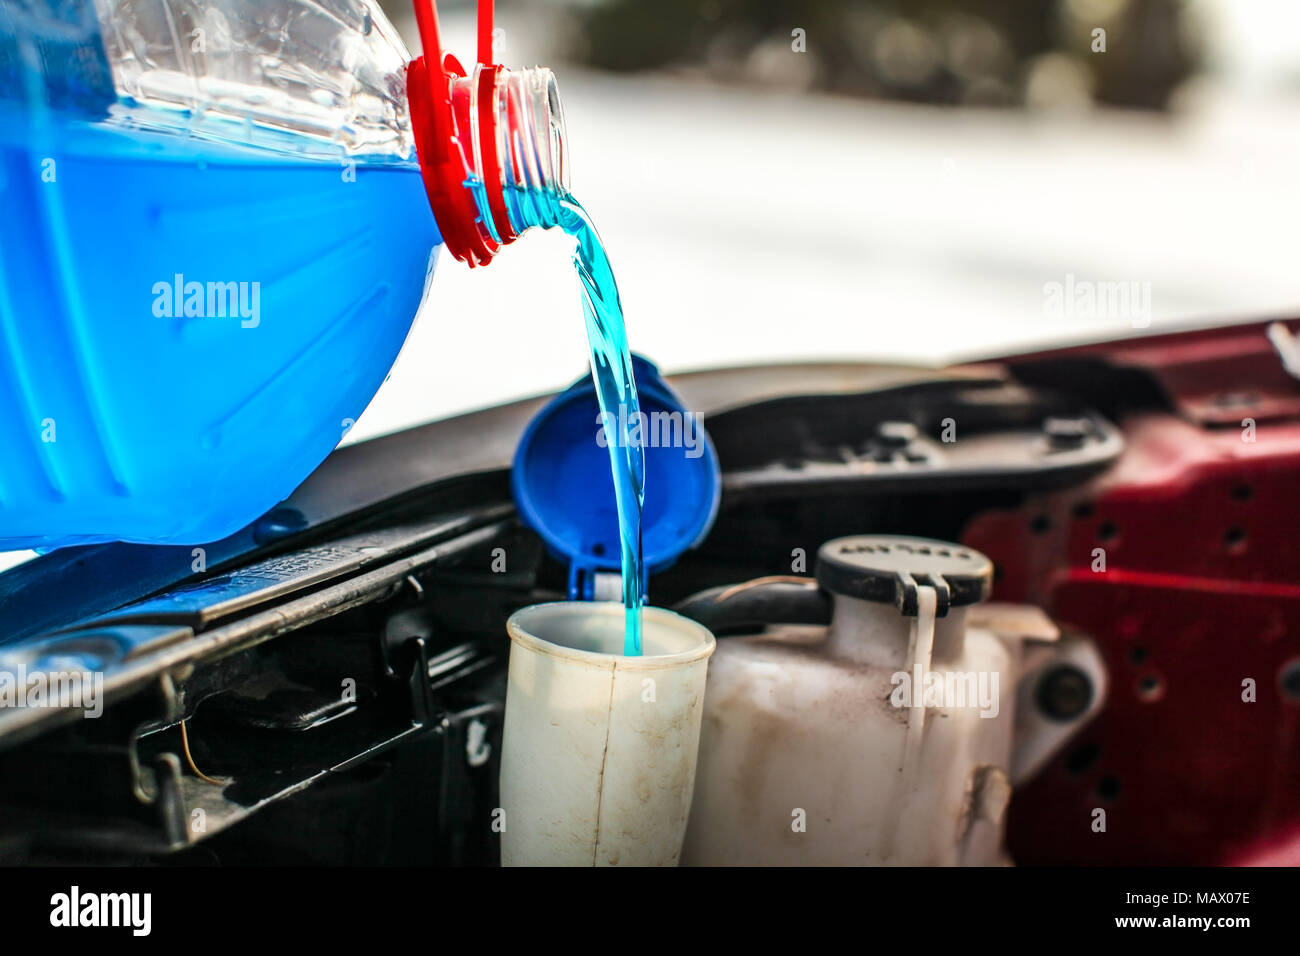 Antifreeze Stock Photos Images Alamy Frozen Engine Coolant Detail On Pouring Liquid Screen Wash Into Dirty Car From Blue And Red Anti Freeze